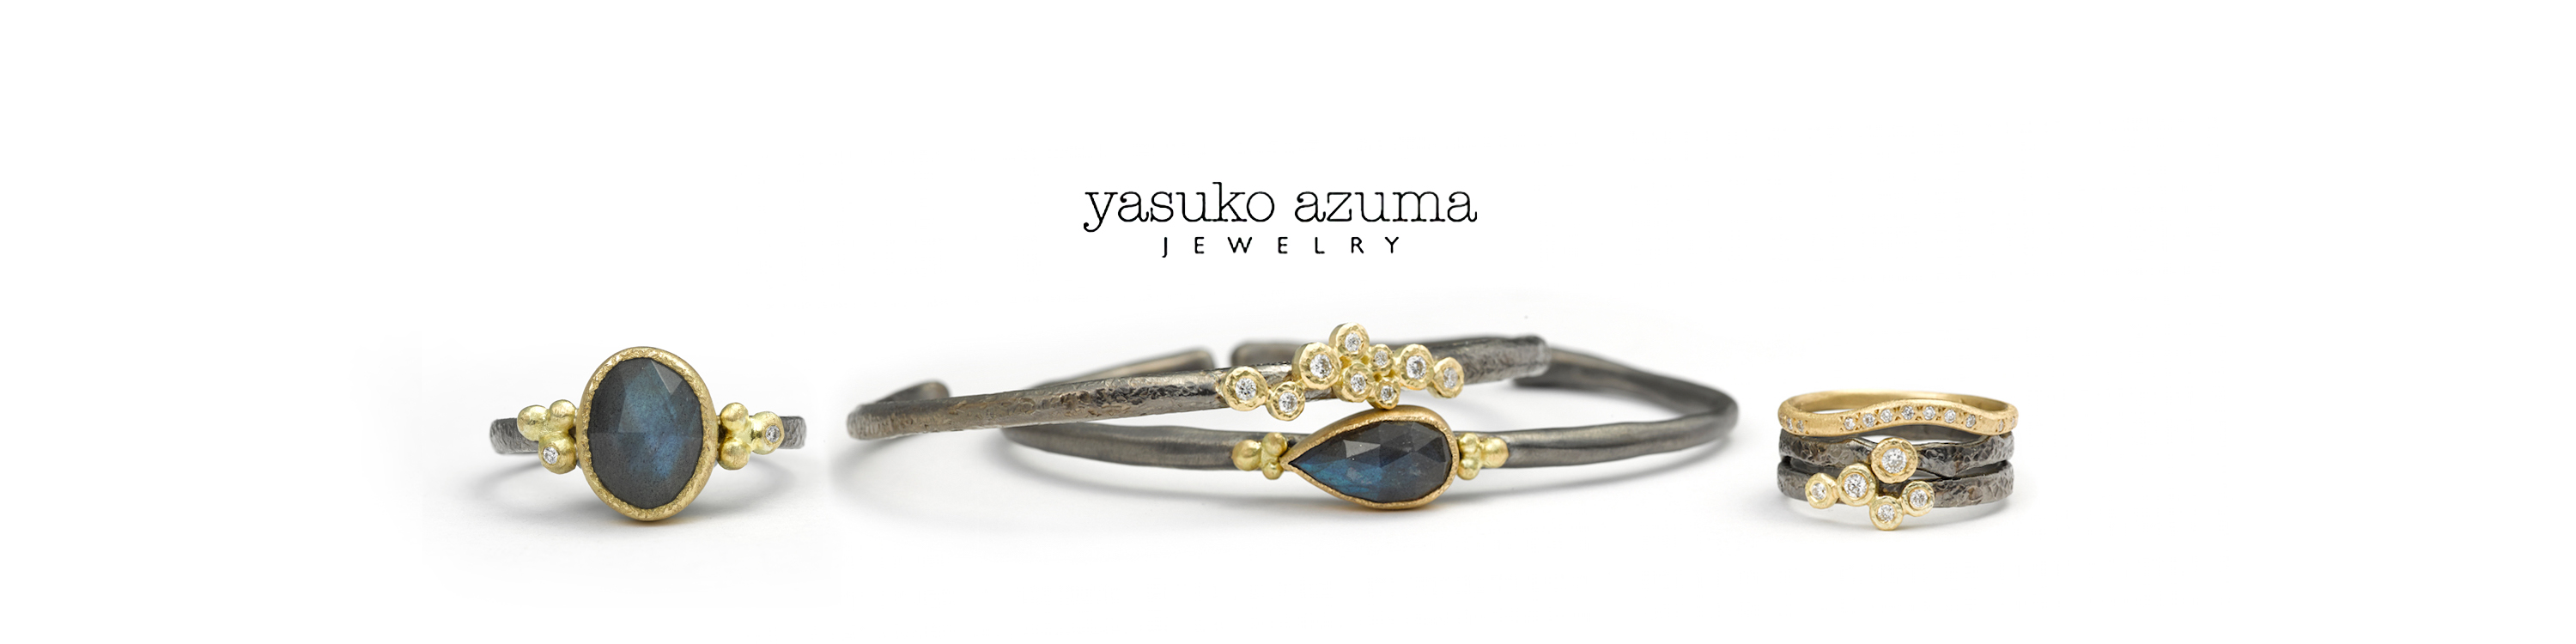 The Jewel - Yasuko Azuma - Lookbook - Gold Gray and Dark Blue